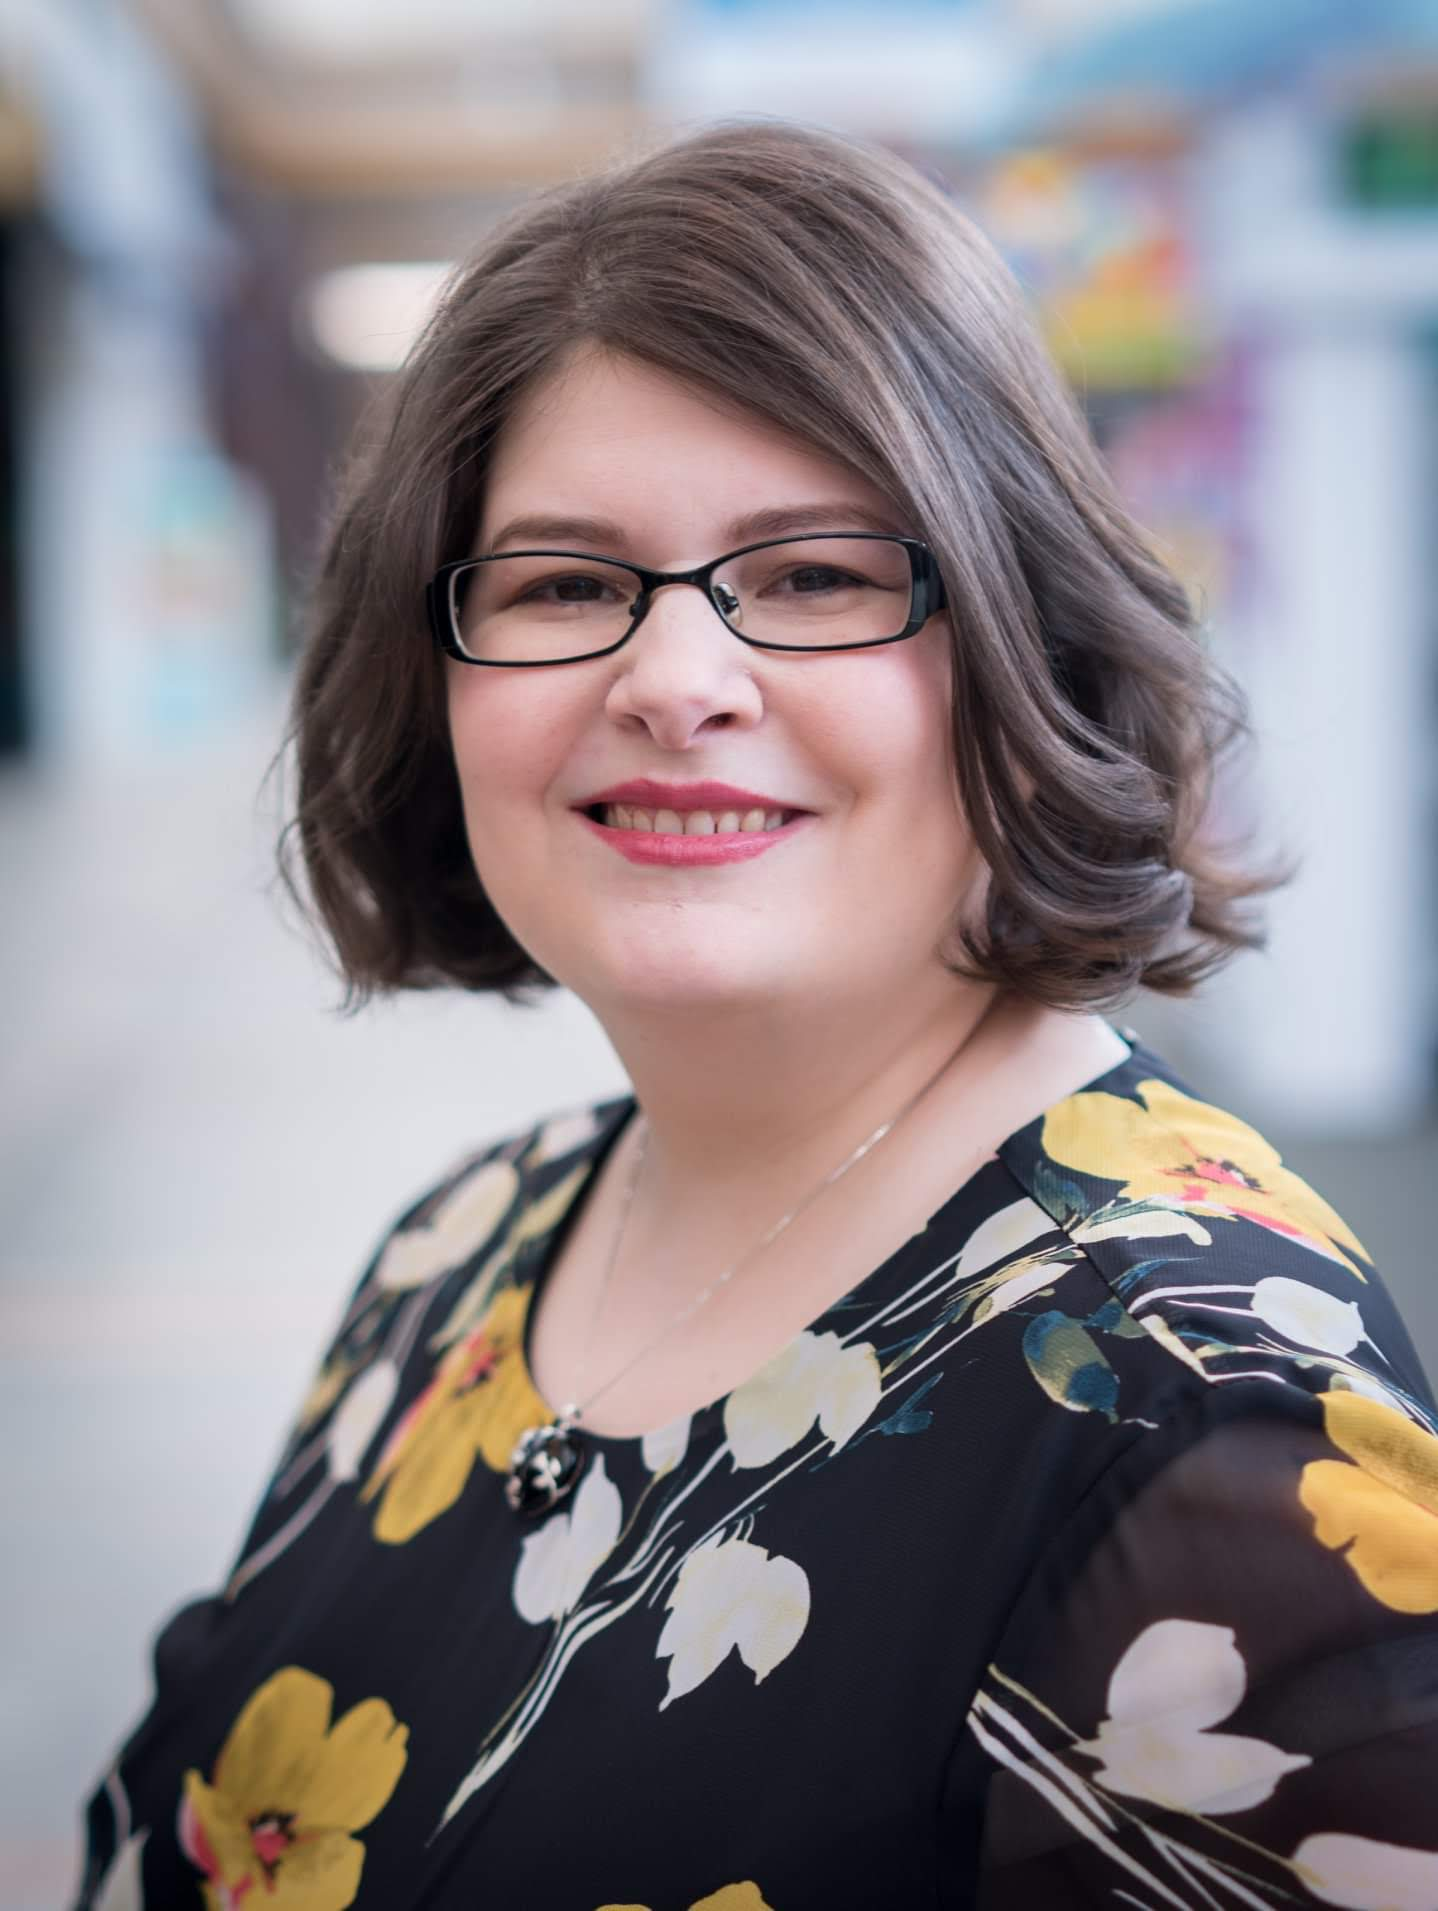 Danielle Kempe has spent years advocating for people with disabilities in Quincy. She aims to leverage her background in non-profits on the Quincy City Council, to make her local government more accessible to its constituents. -